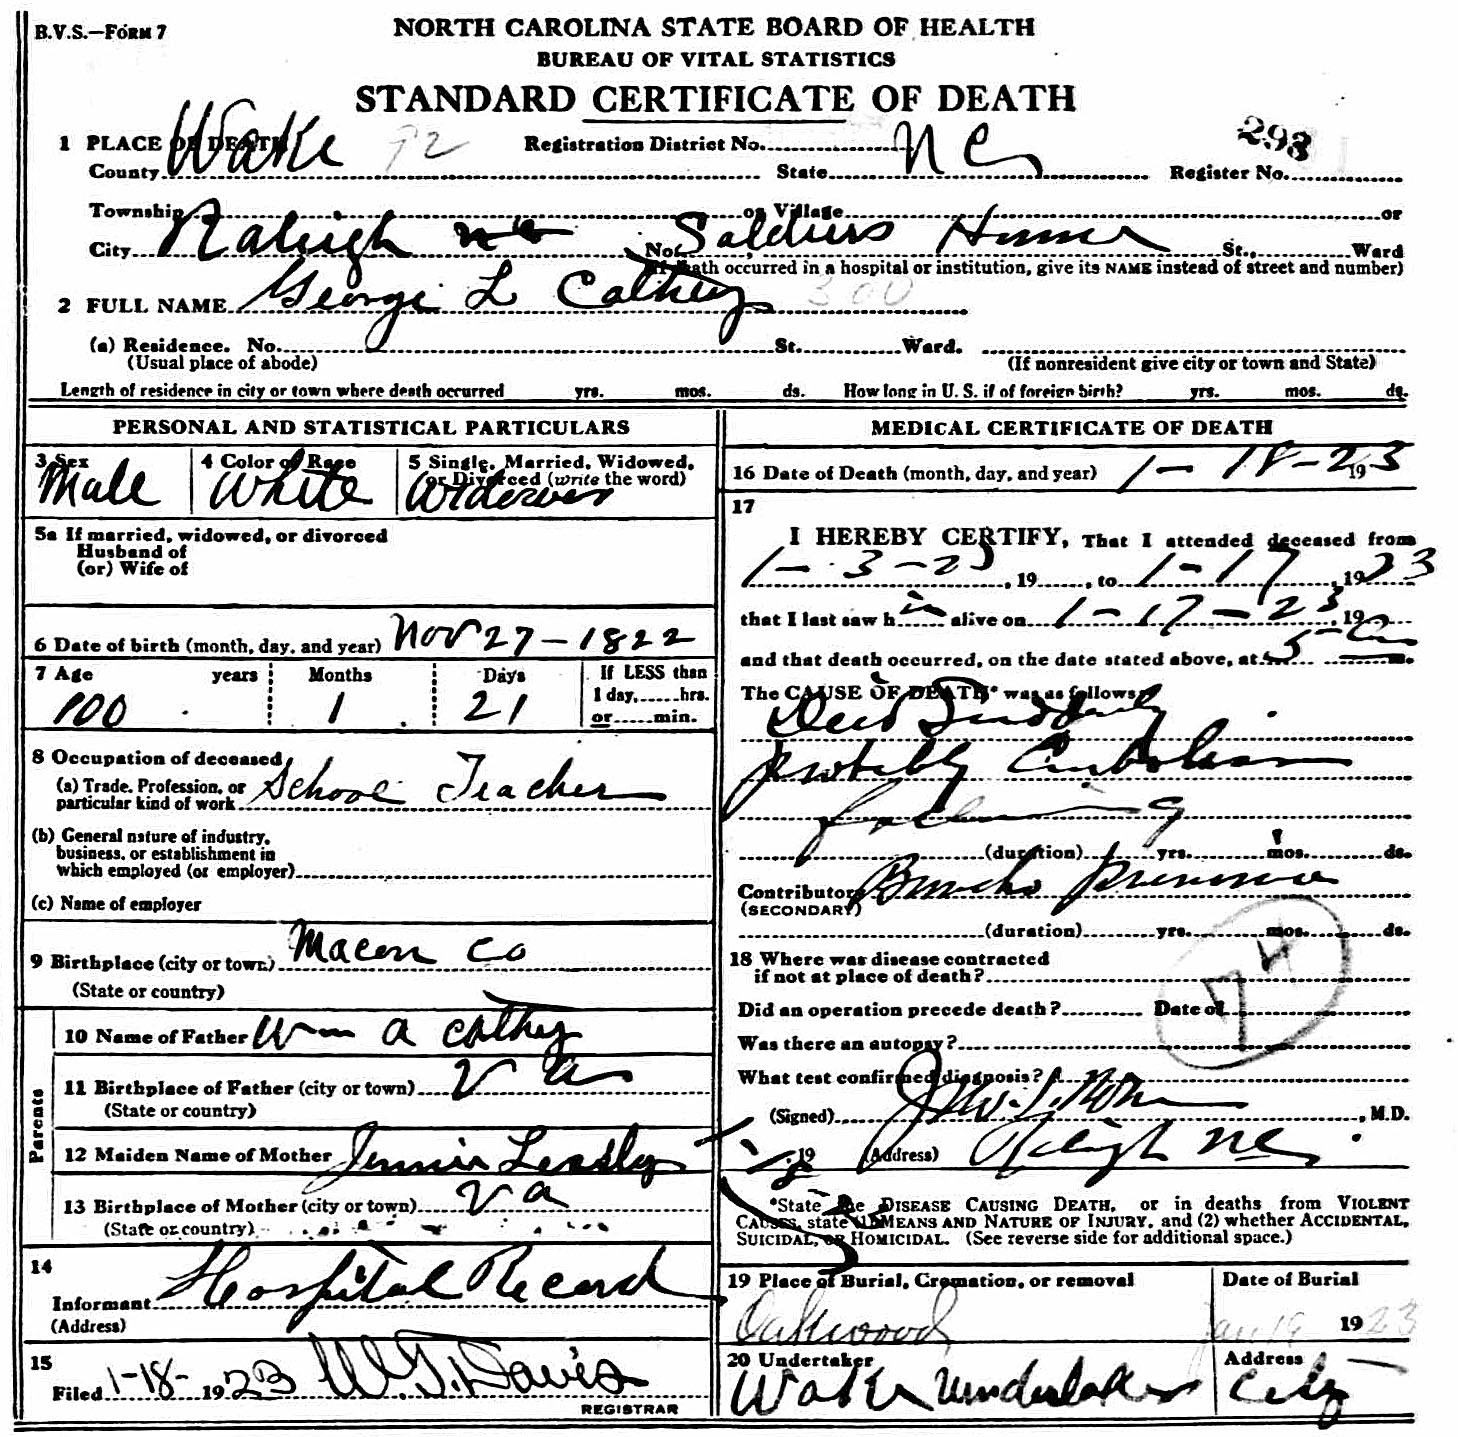 Captain George Leonidas Cathey Death Certificate